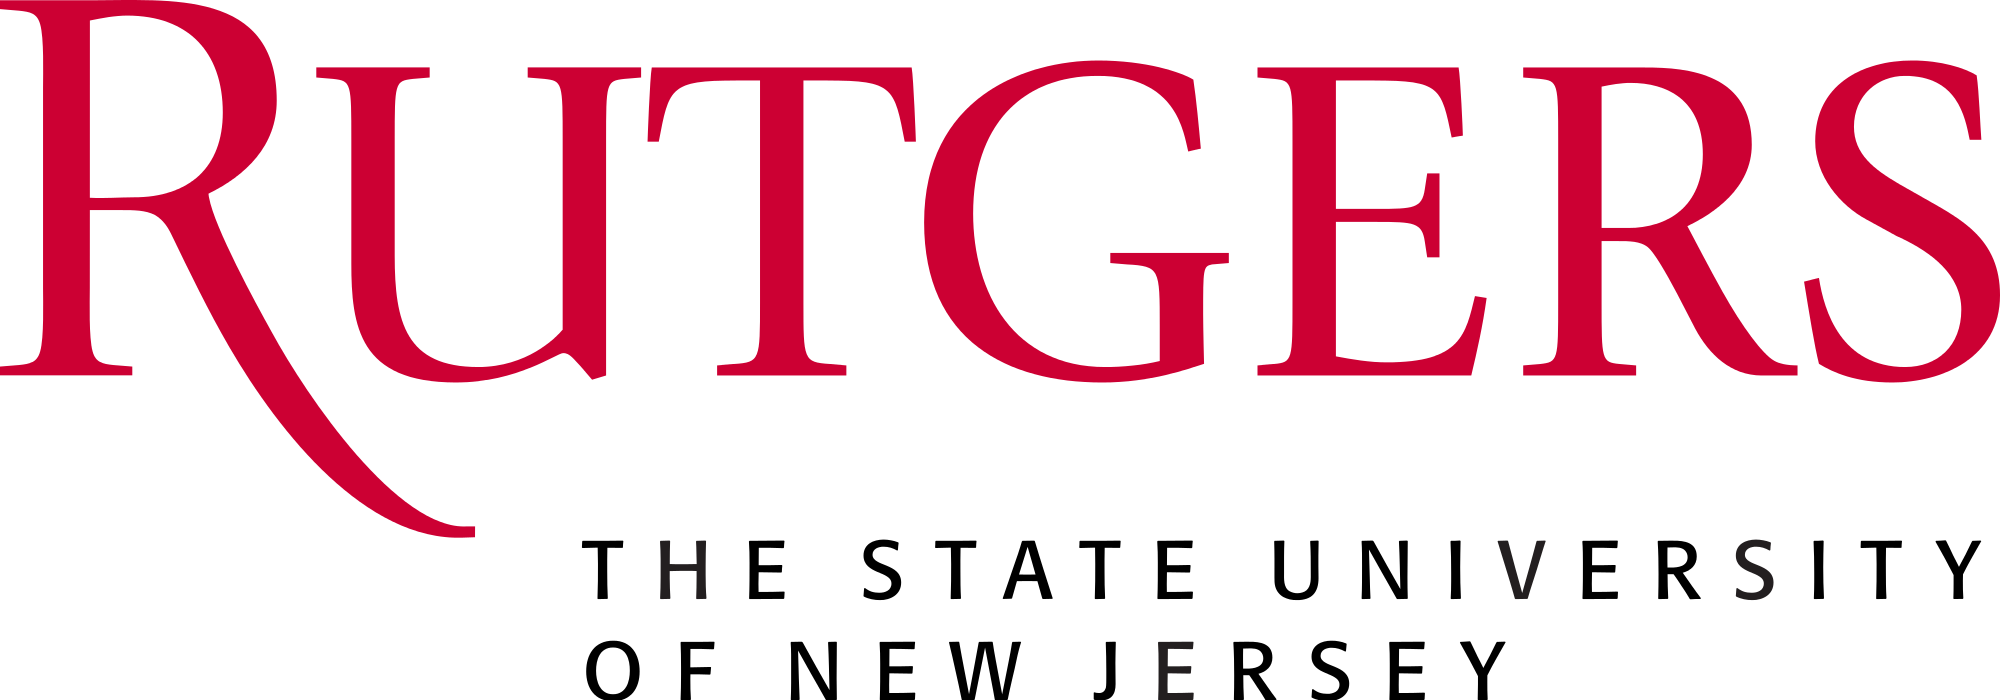 Rutgers_University_with_the_state_university_logo.png